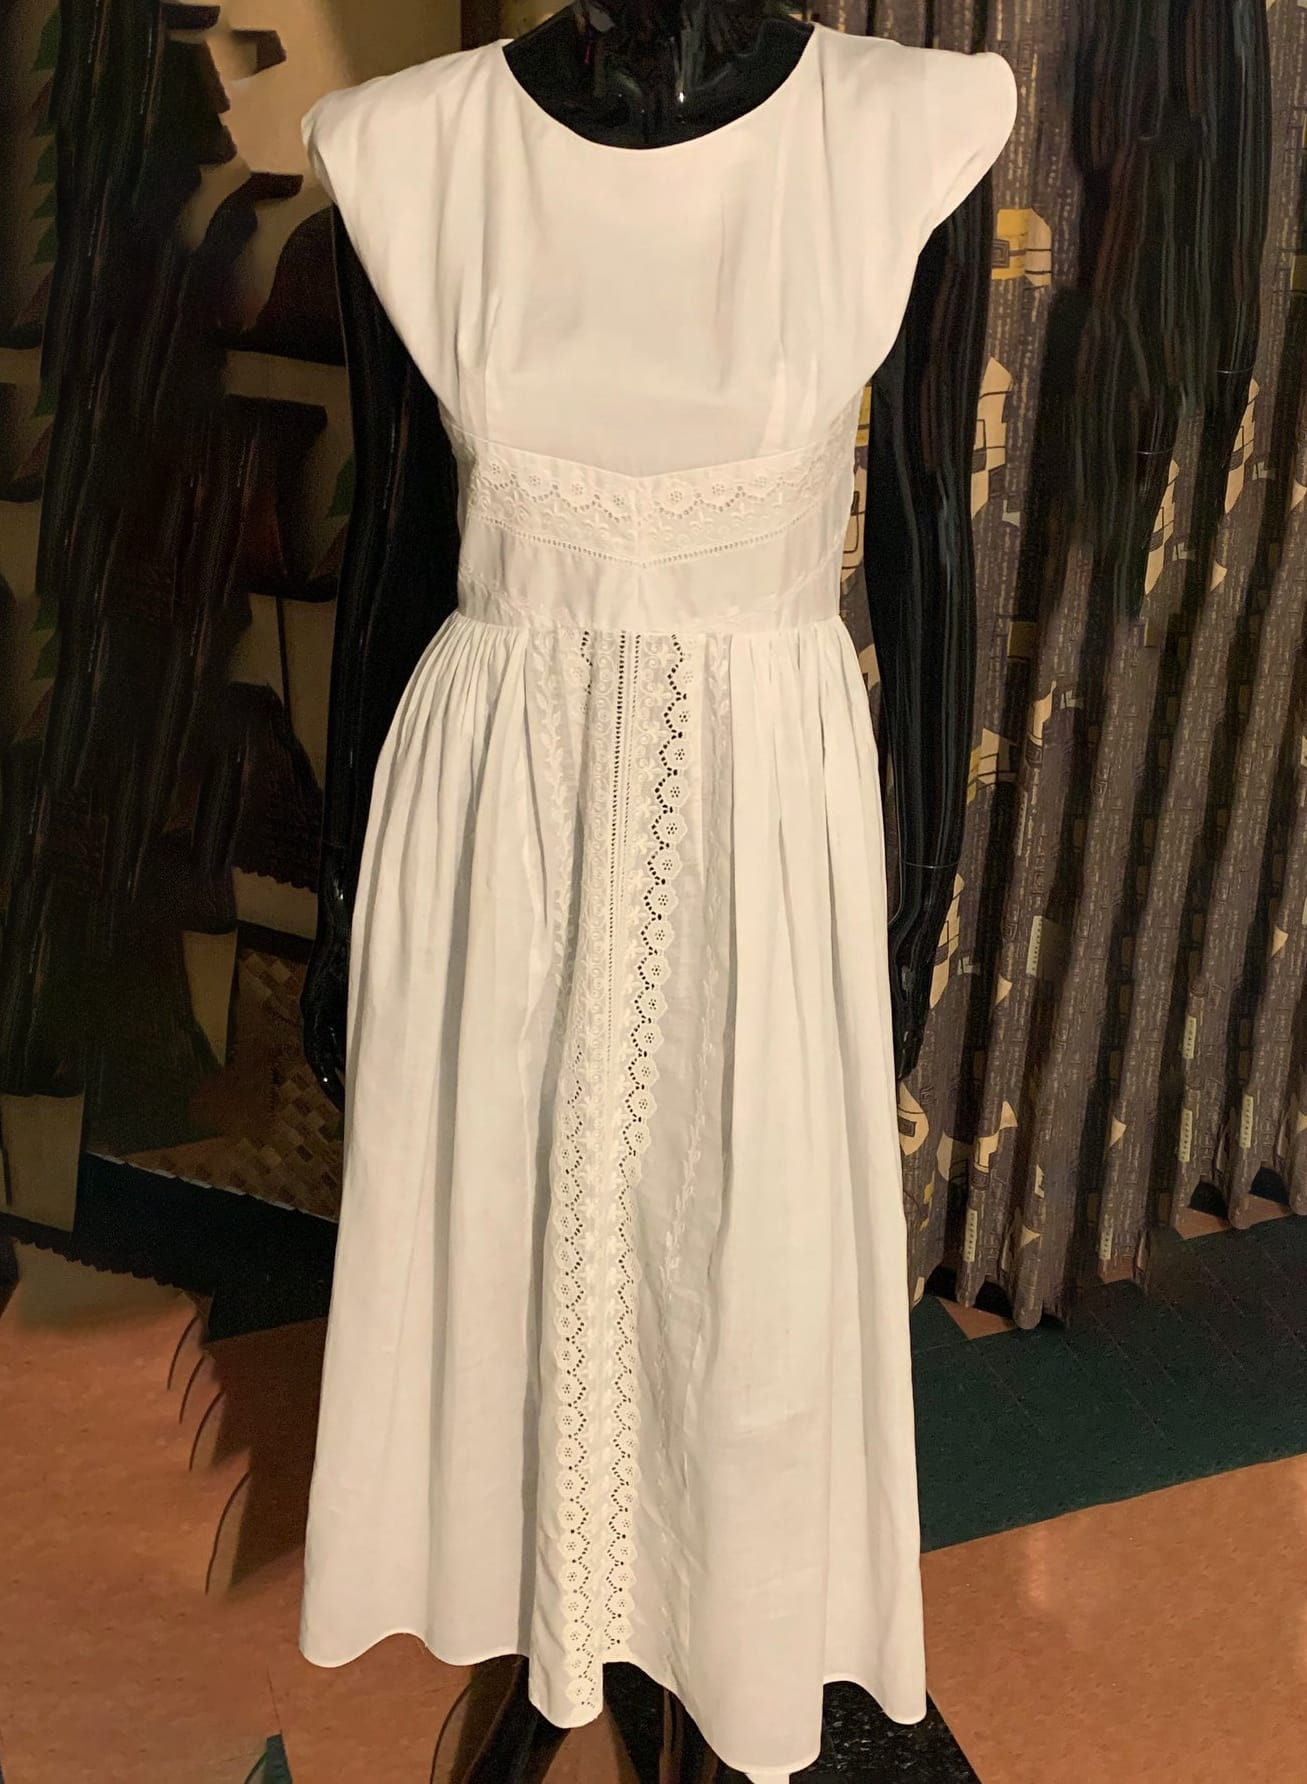 Vintage 1960's Eyelet Lace 60's White Cotton Scoop Collar Tulip Sleeves Womens Casual Party Dress - M